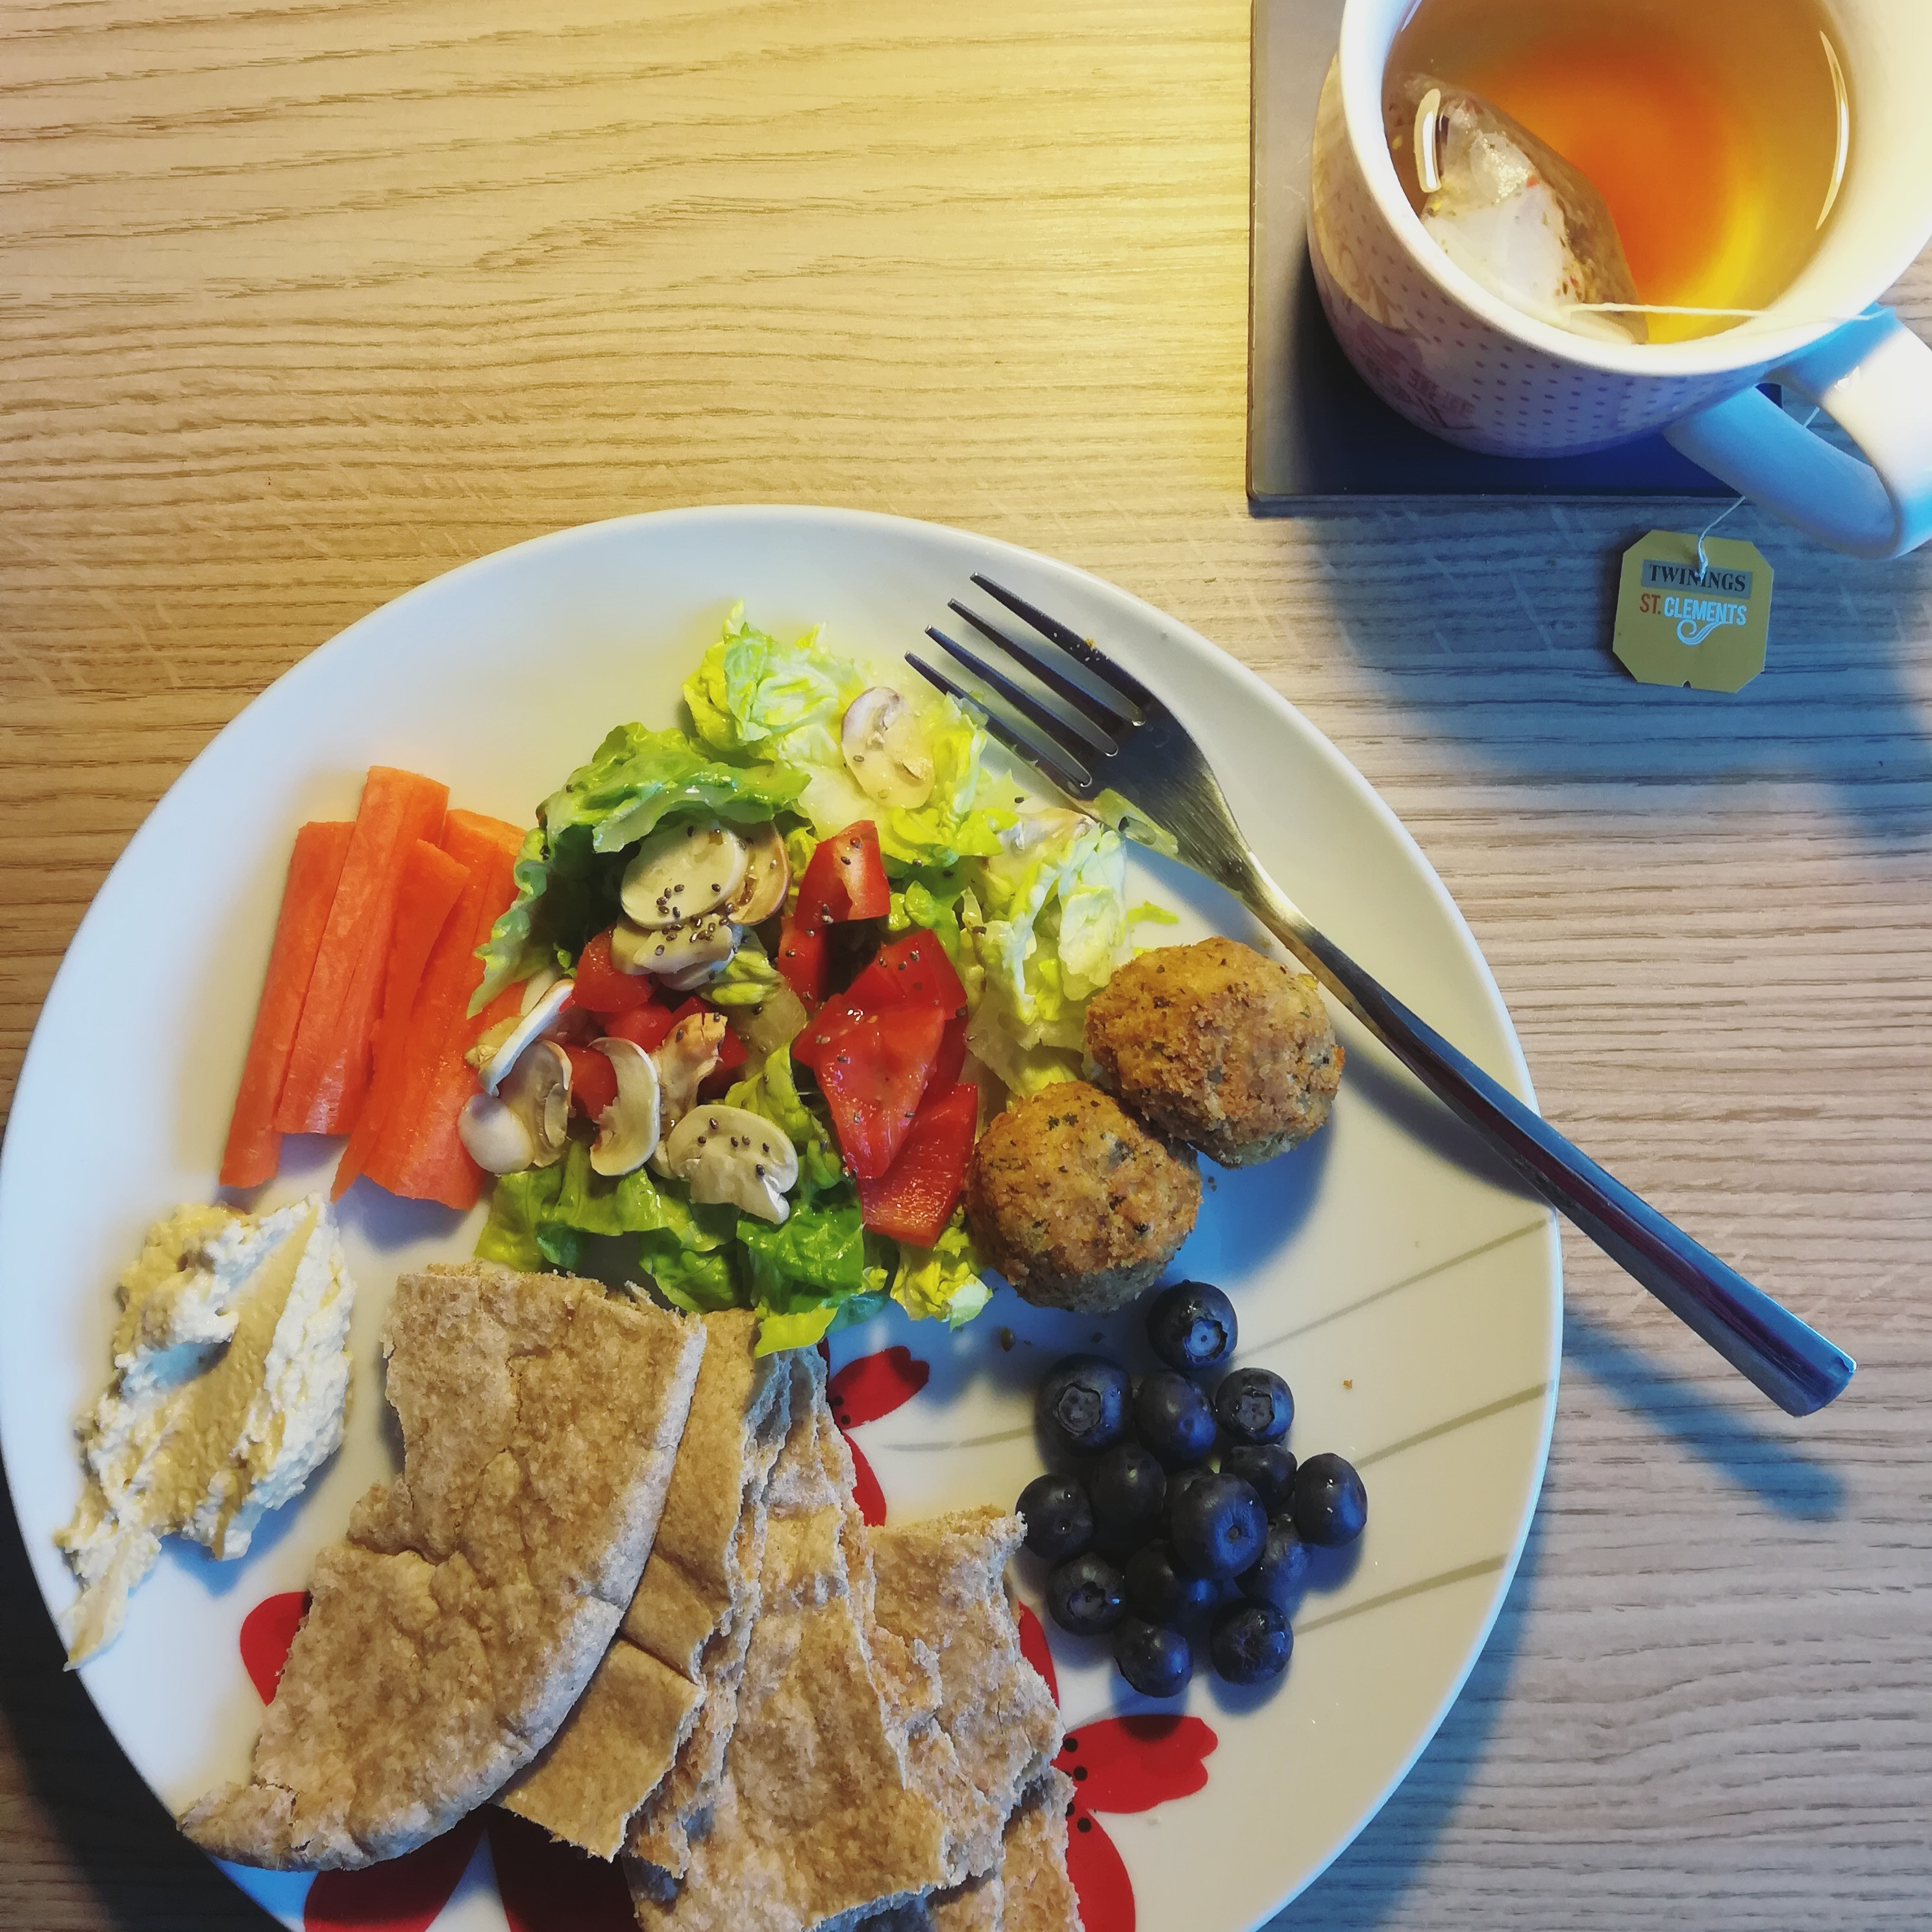 RECIPE | 5 easy student weekday lunch ideas